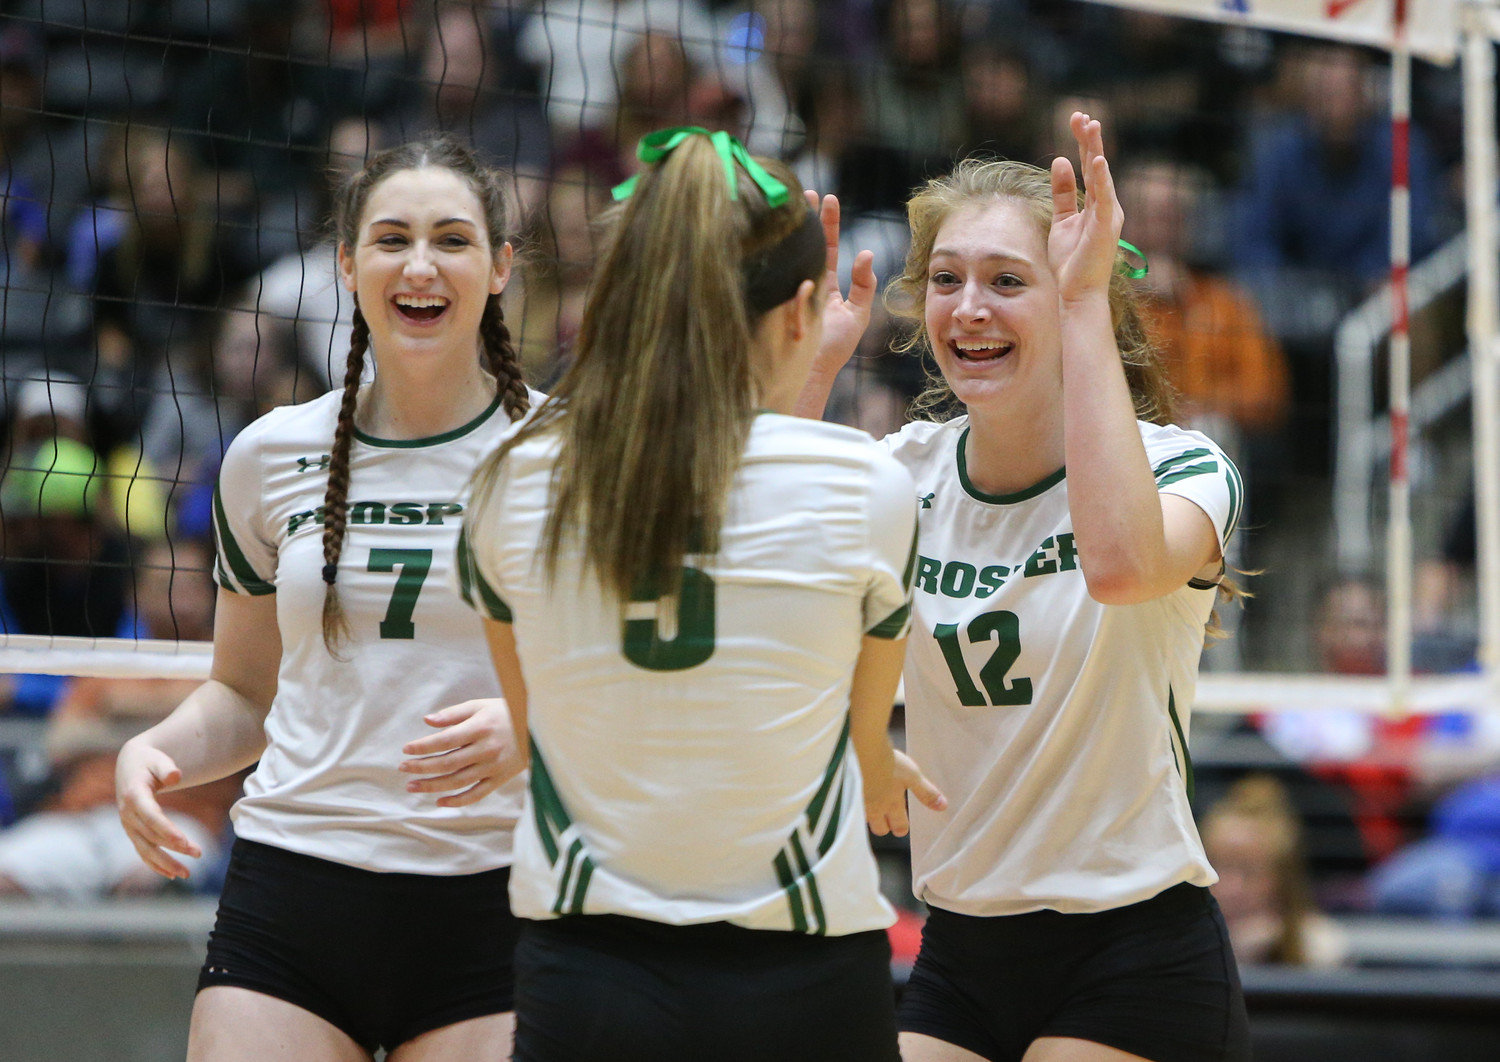 The Prosper Eagles celebrate a point during the Class 5A high school volleyball state final between Rouse High School and Prosper High School at Curtis Culwell Center in Garland, Texas, on November 18, 2017. Prosper won the match in five sets, (25-18, 21-25, 18-25, 25, 23, 16-14) to win the 5A state championship.